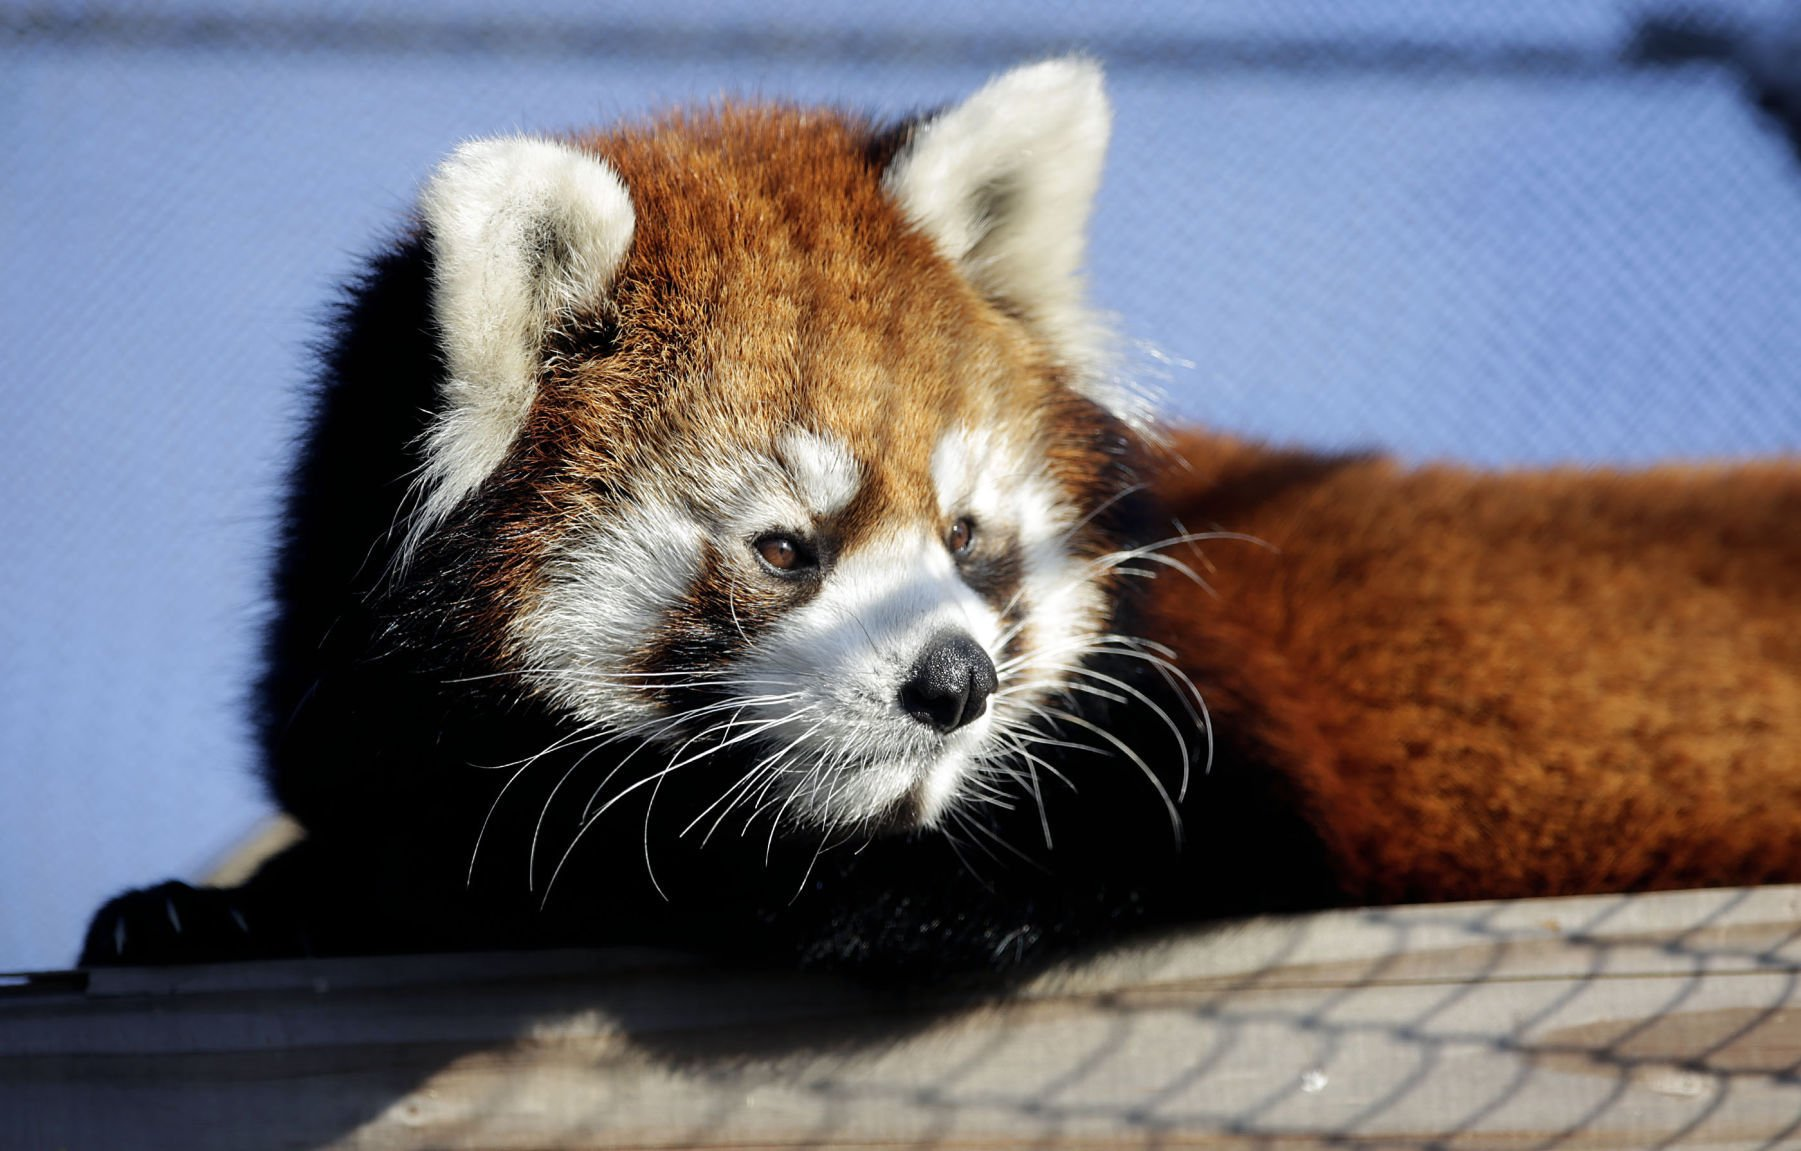 Image of: Endangered Species Red Panda Indias Endangered Tulsa Zoos Red Panda An Endangered Species Now On Display Local